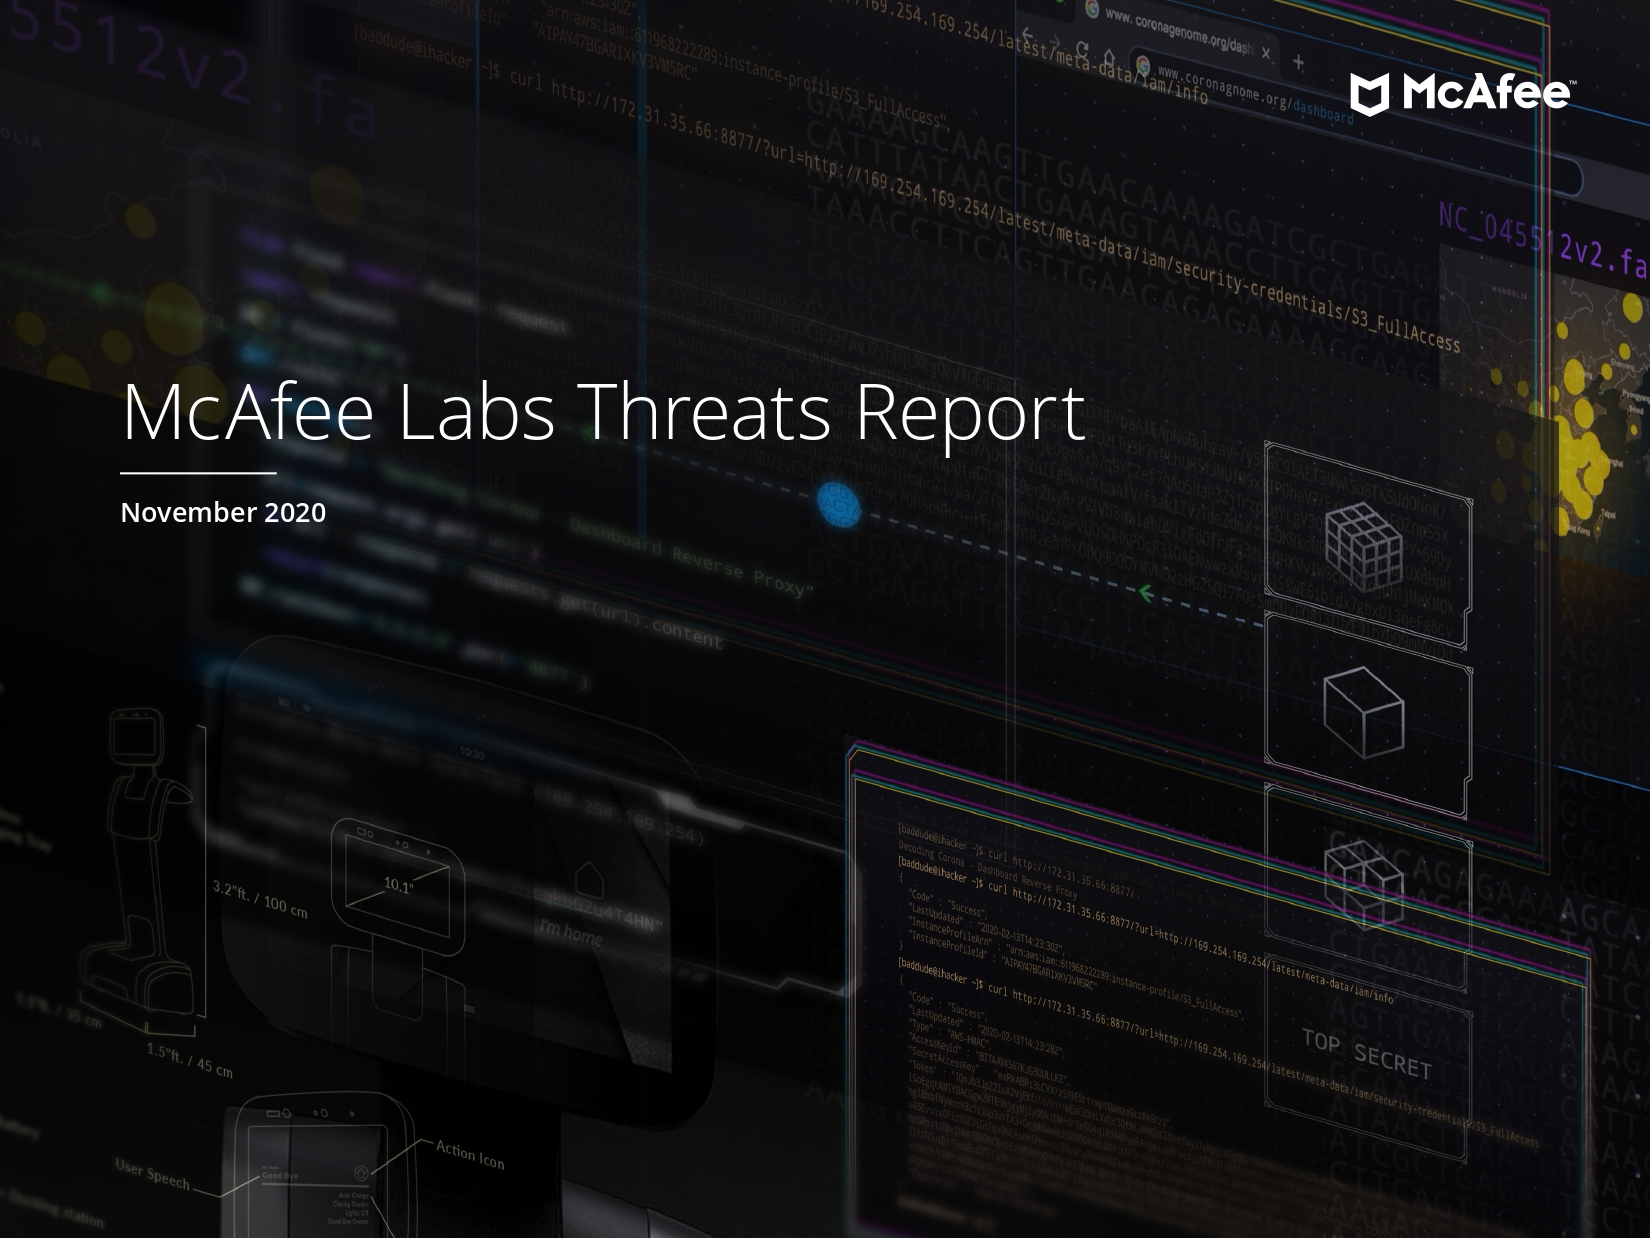 McAfee Sees COVID-19-Themed Threats and Powershell Malware Surge in Q2 2020